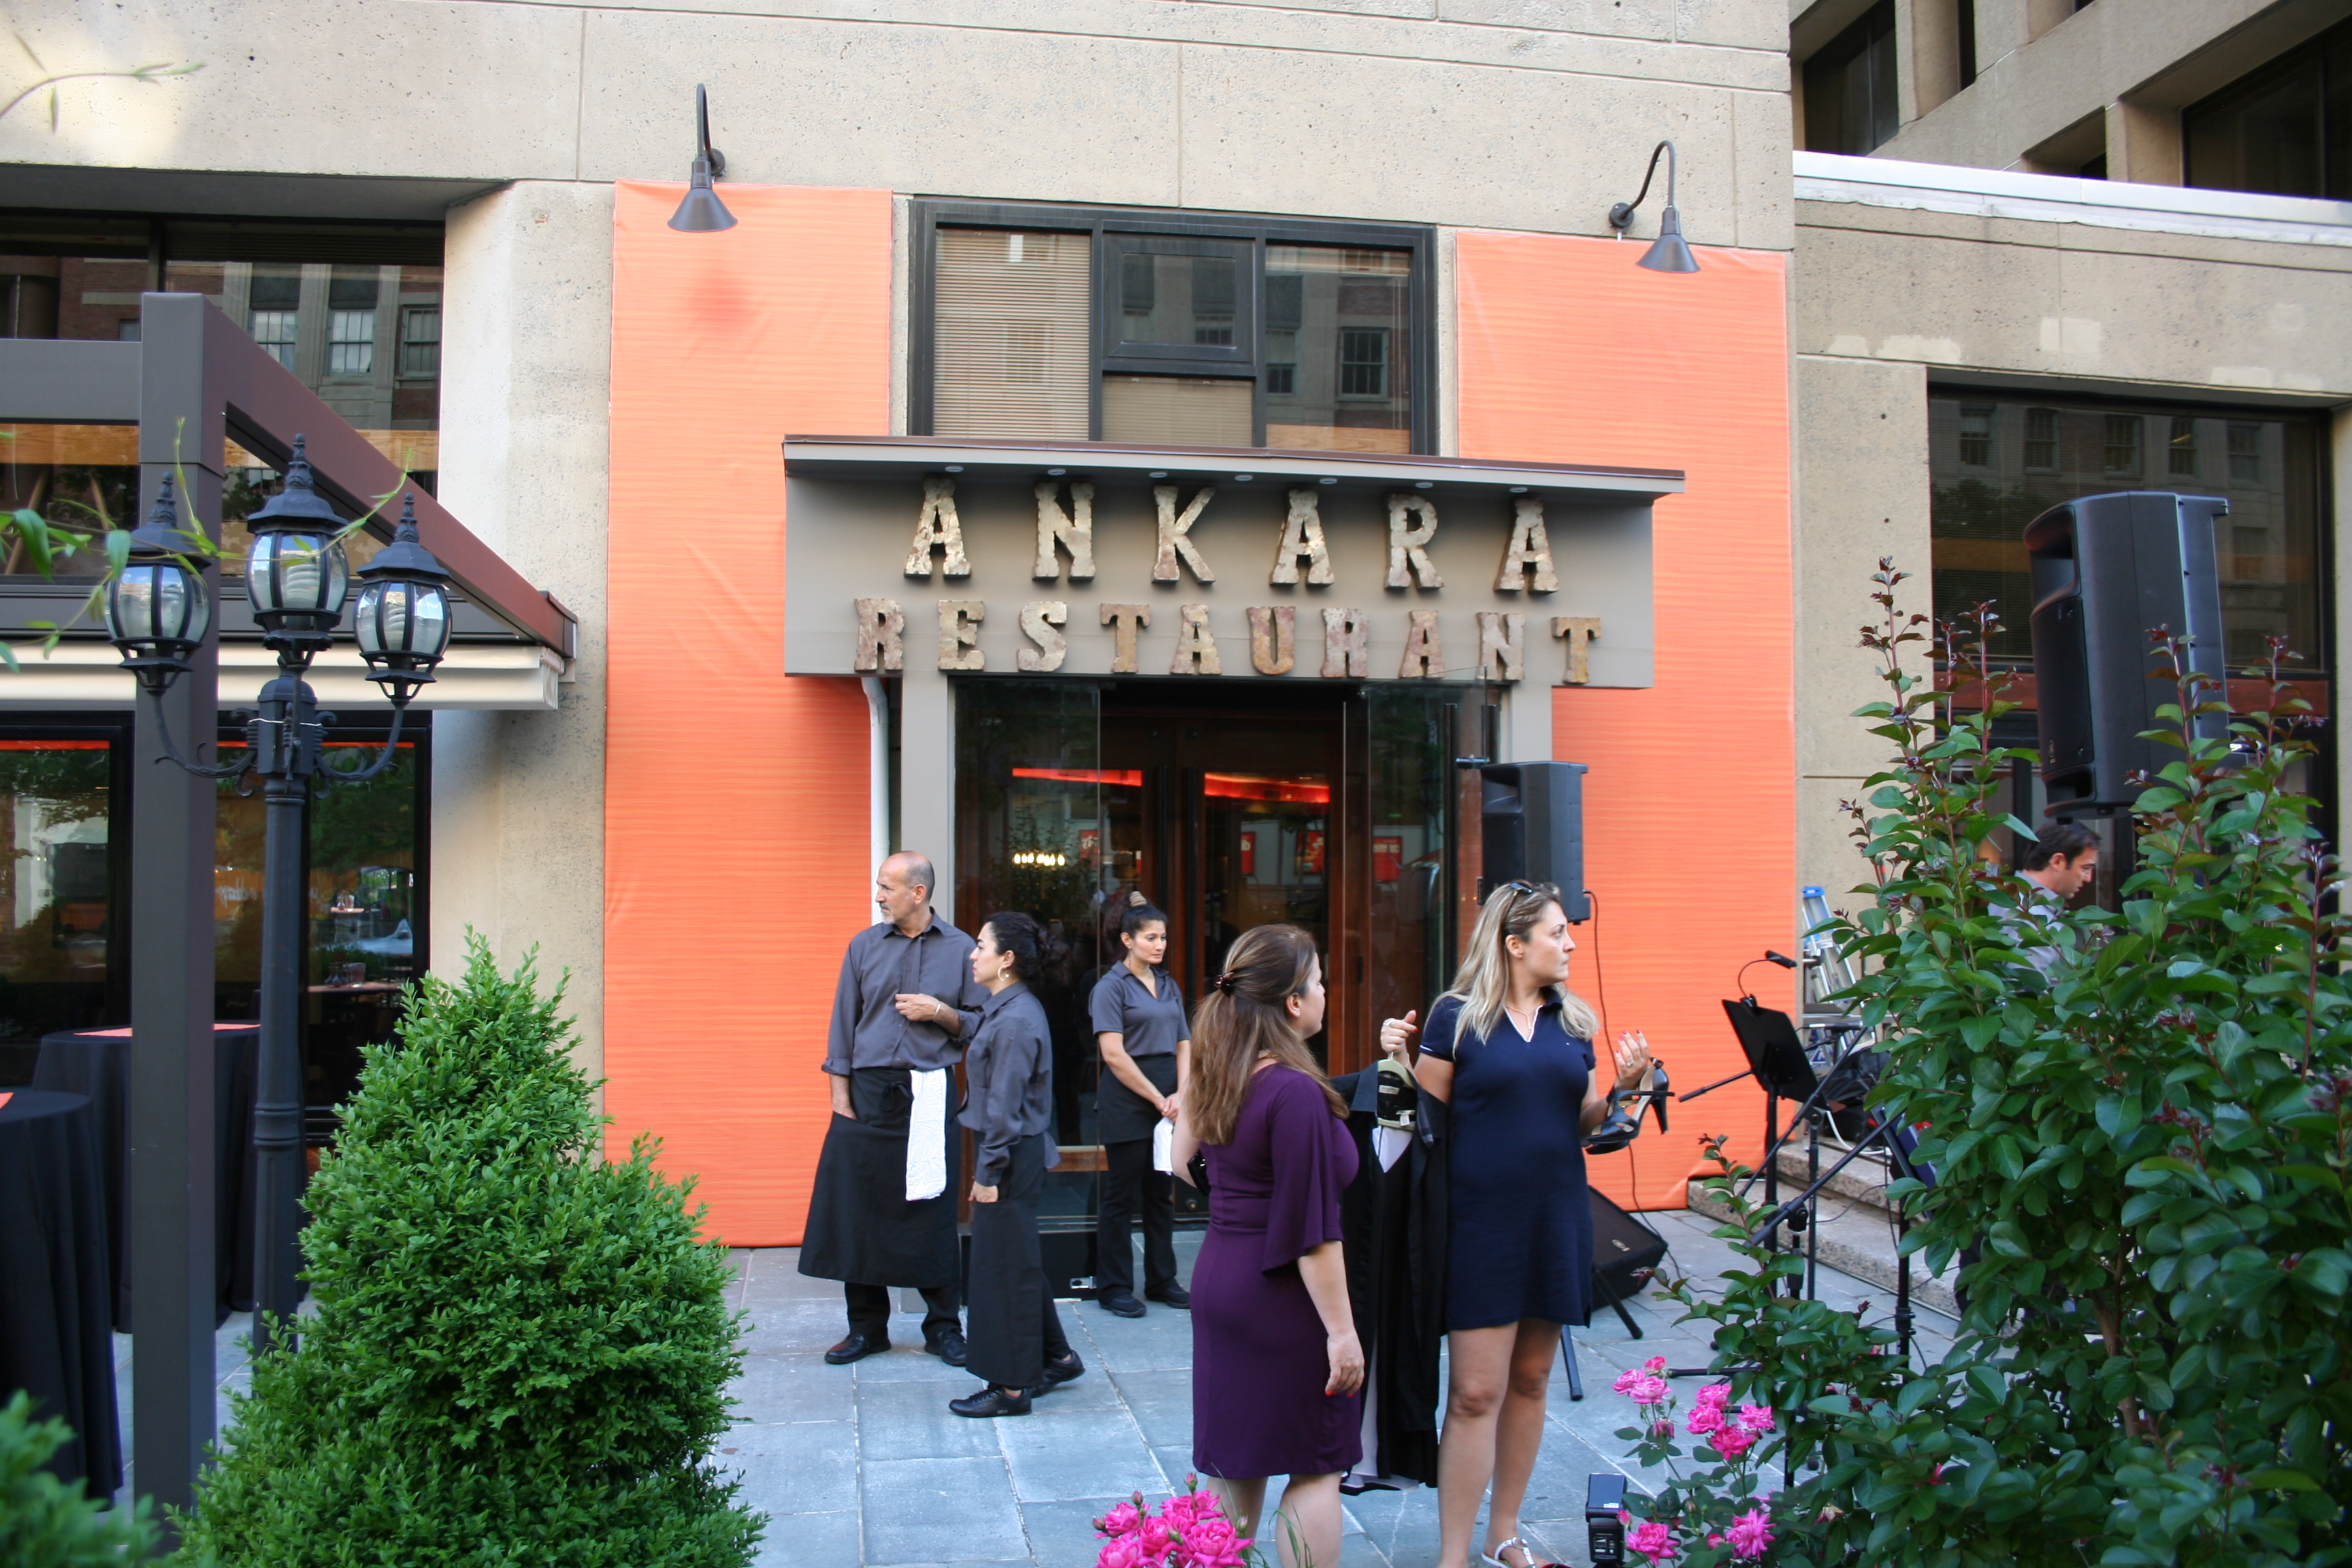 Ankara Turkish Restaurant opens today across from the Dupont South Metro station. (Photo: Mark Heckathorn/DC on Heels)